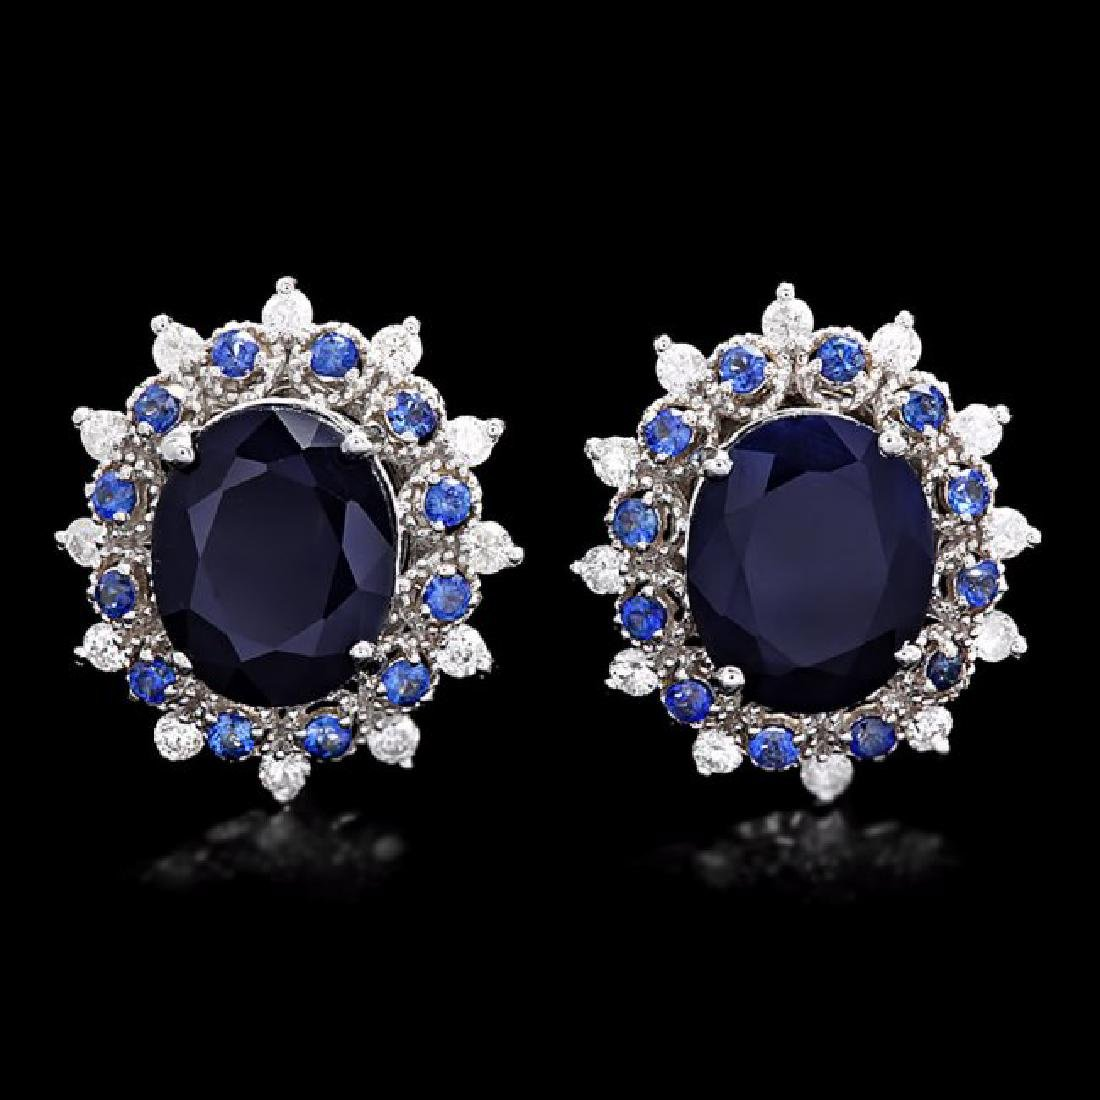 14k Gold 8.2ct Sapphire 0.75ct Diamond Earrings